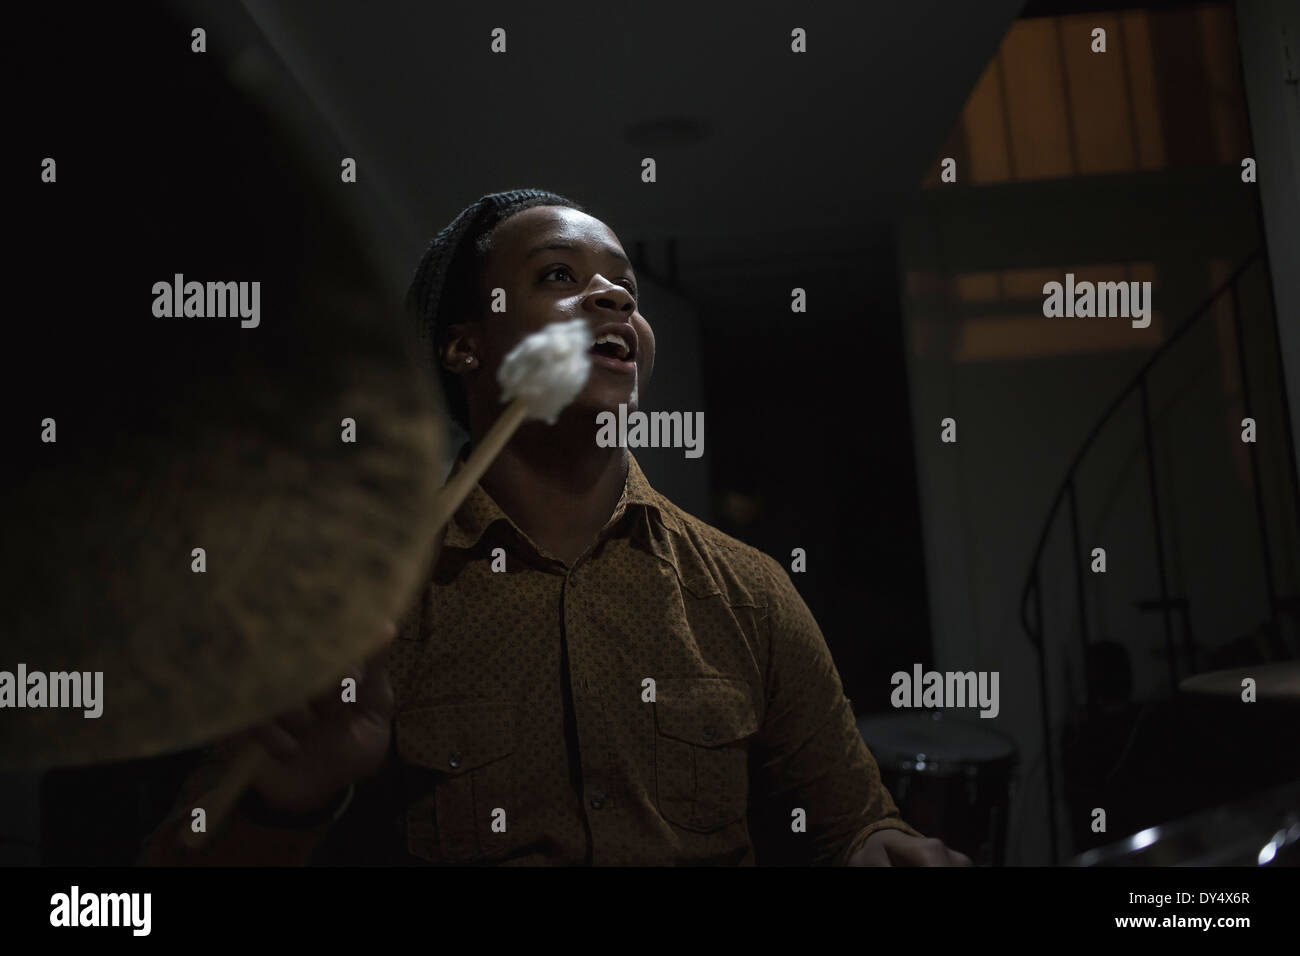 Musician playing drums - Stock Image